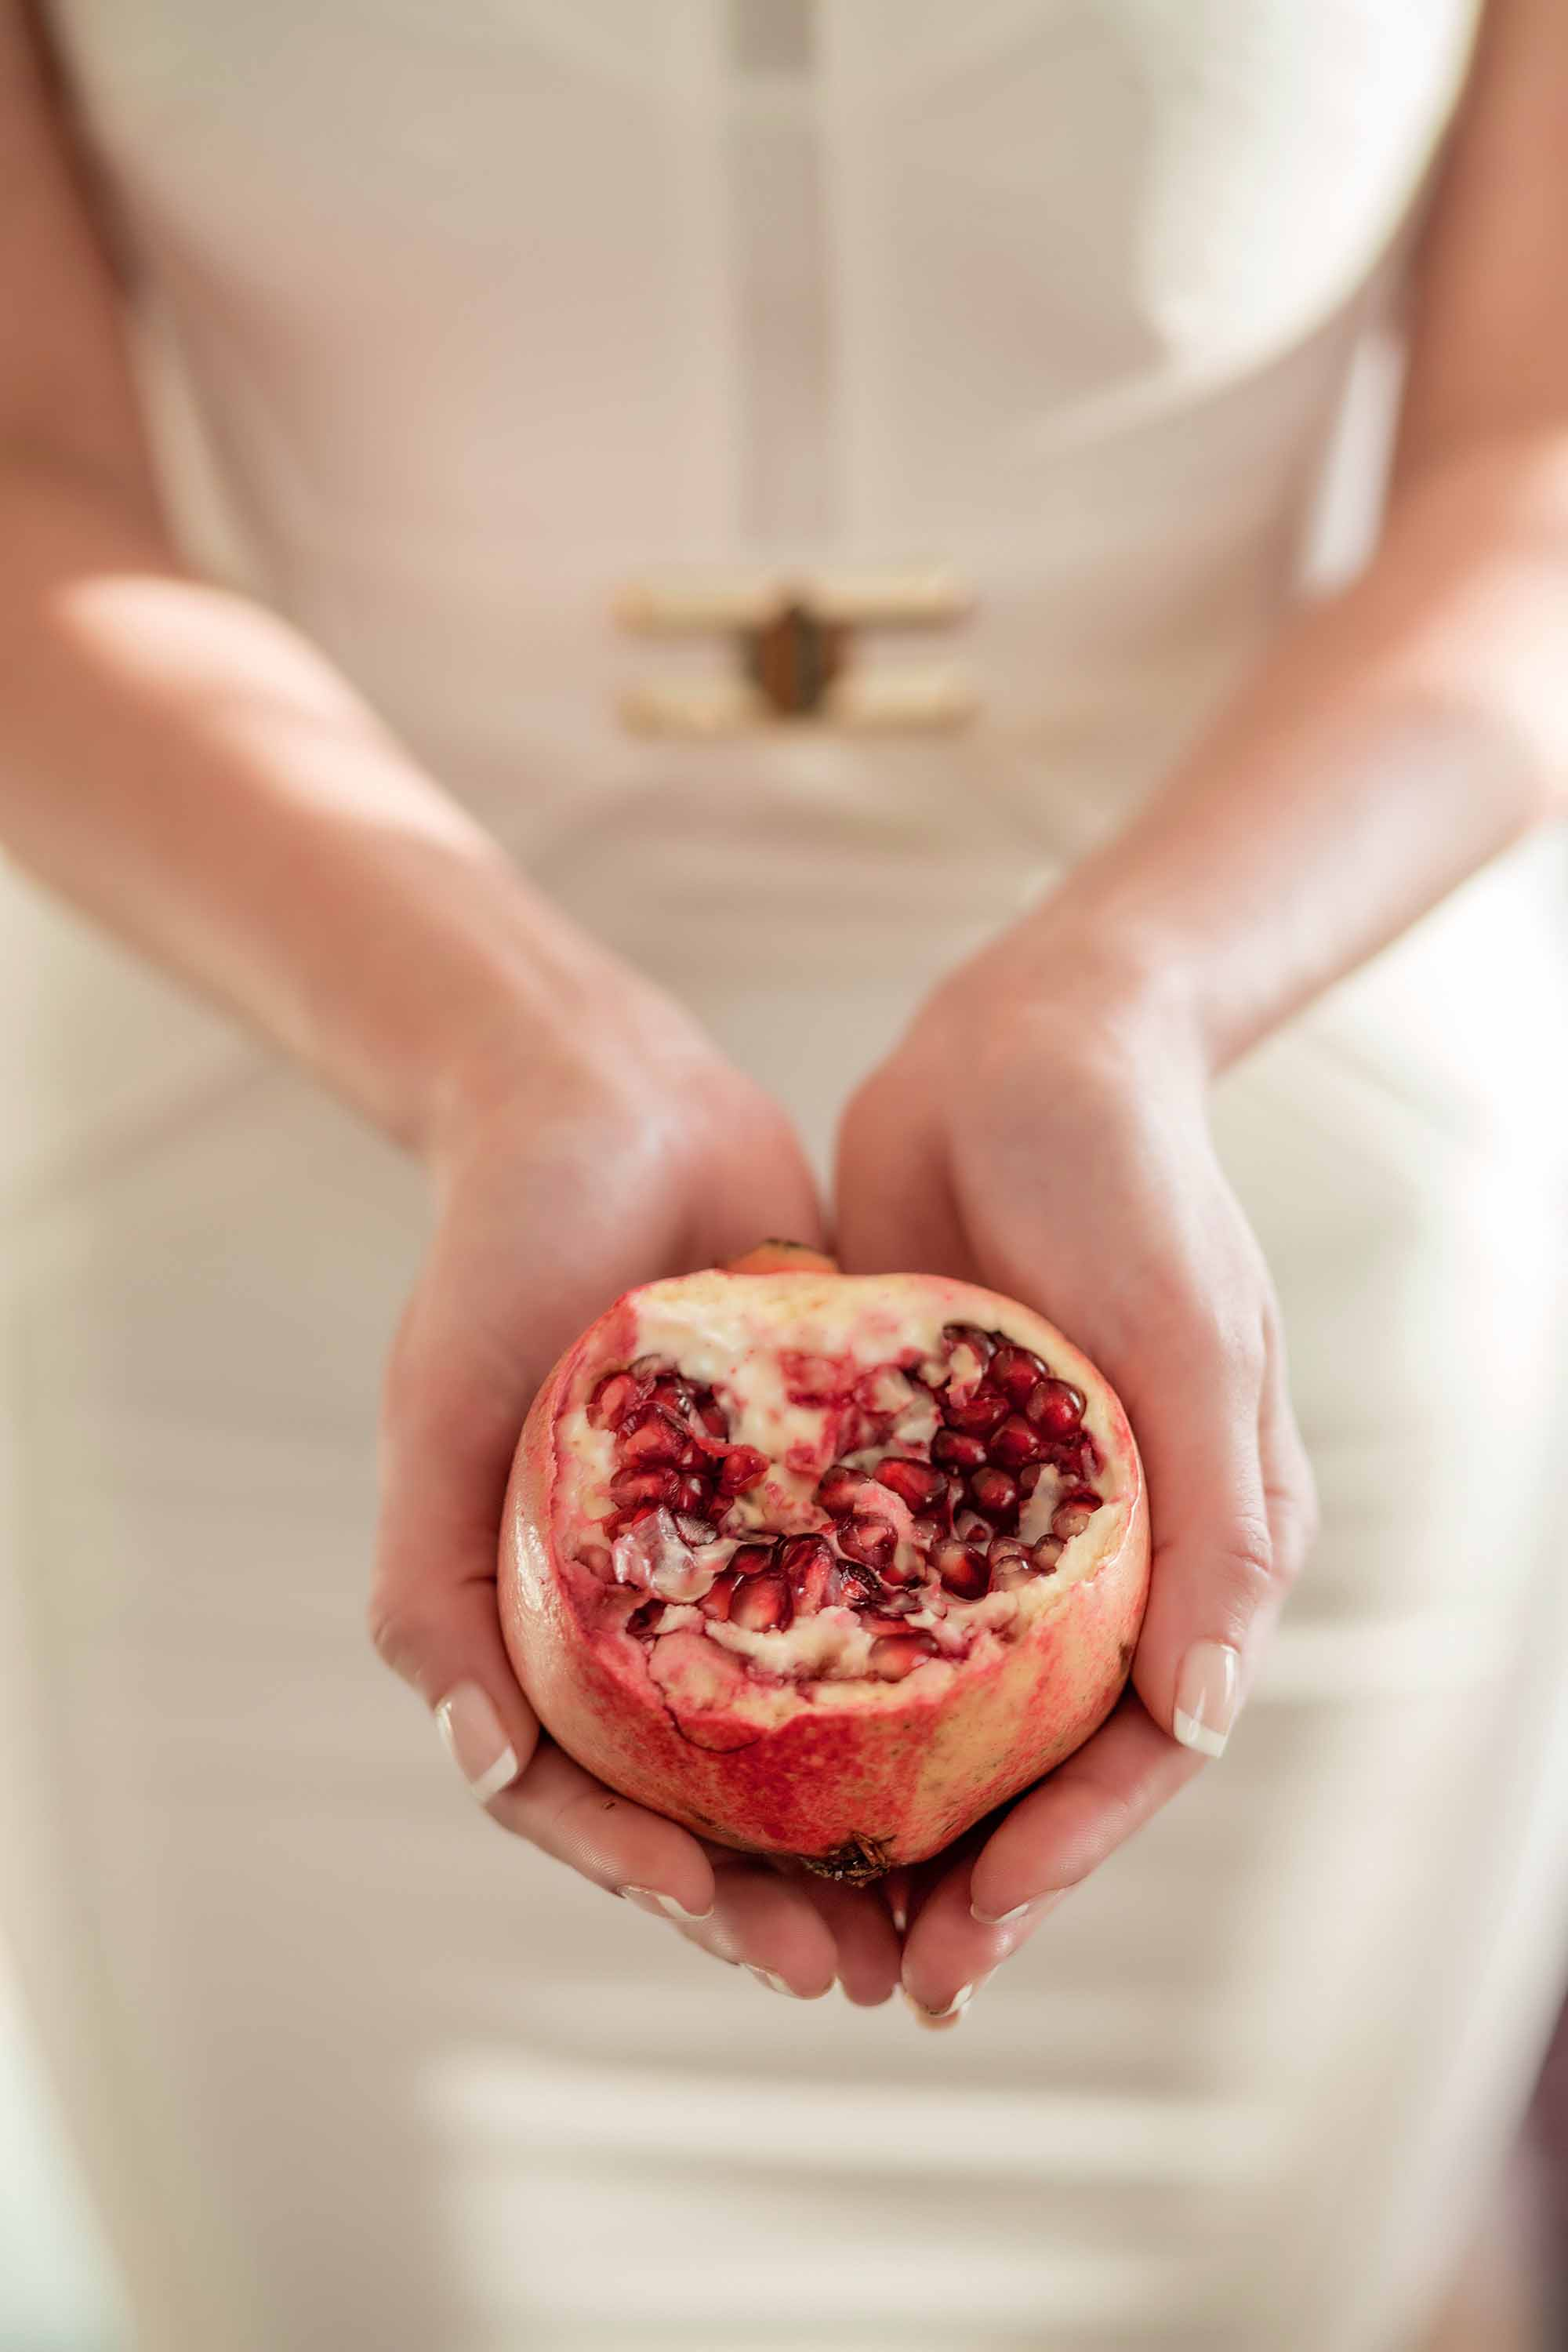 The beauty of pomegranate